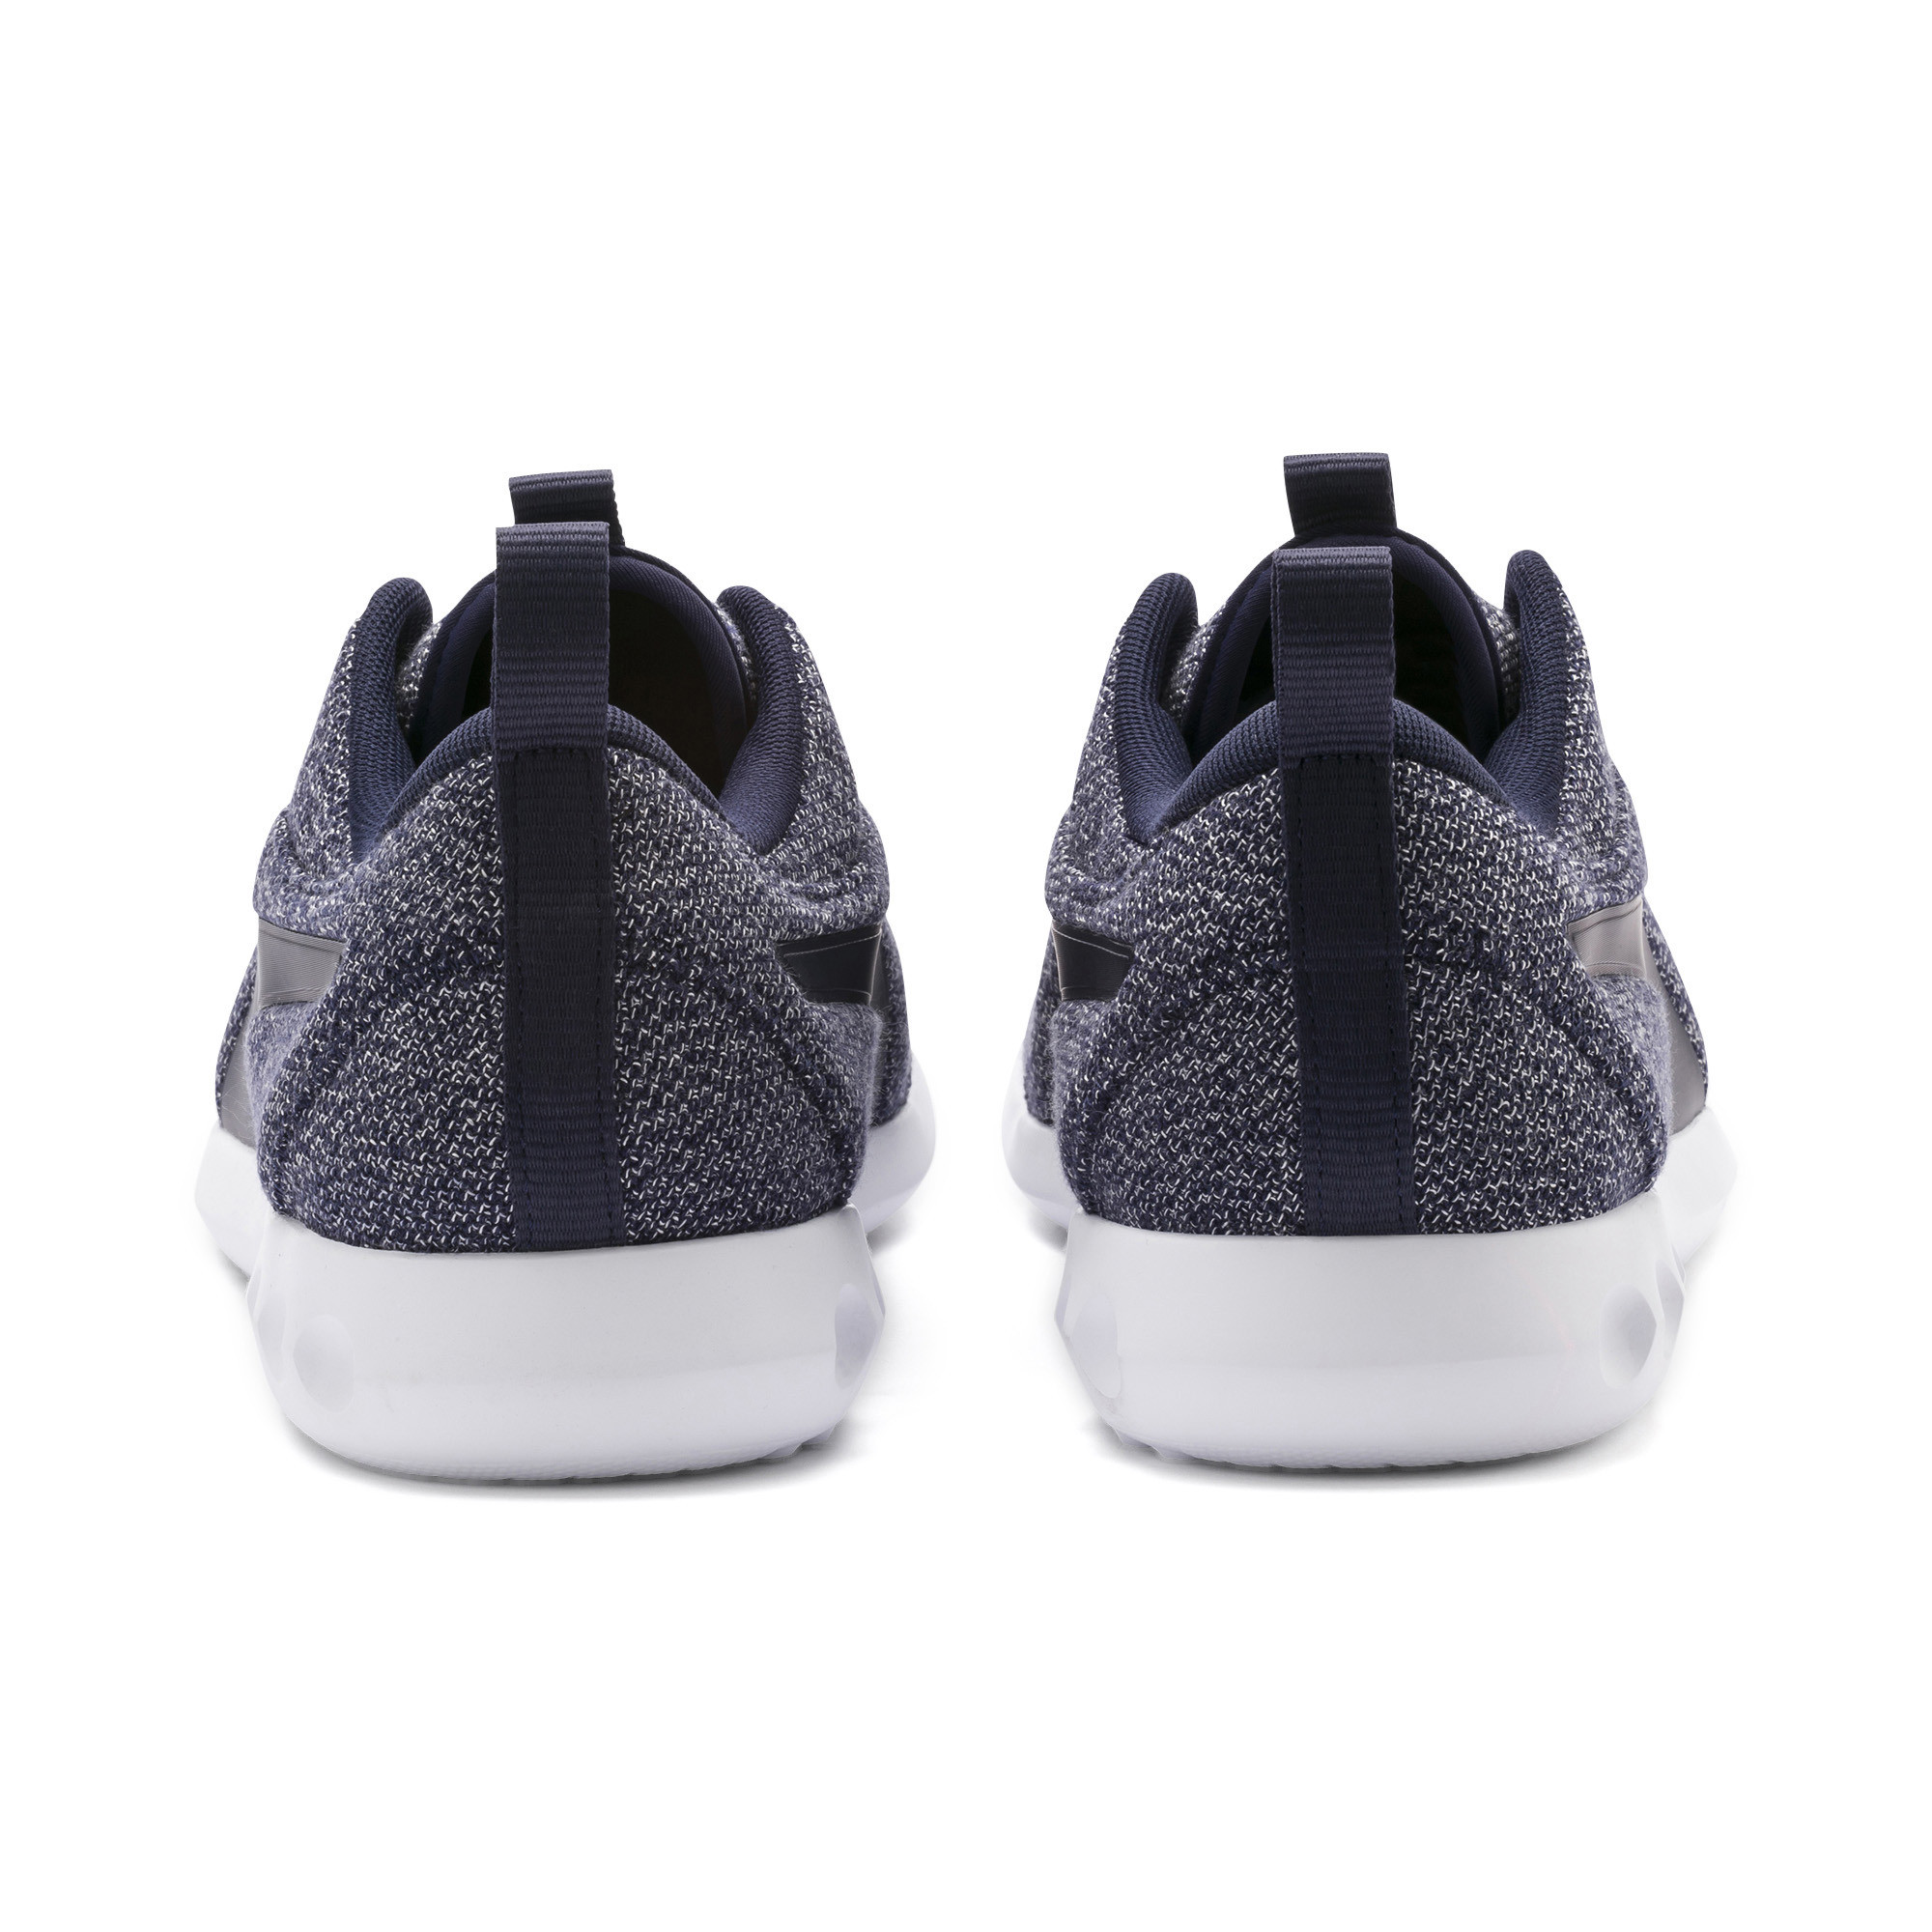 PUMA-Men-039-s-Carson-2-Knit-Training-Shoes thumbnail 22